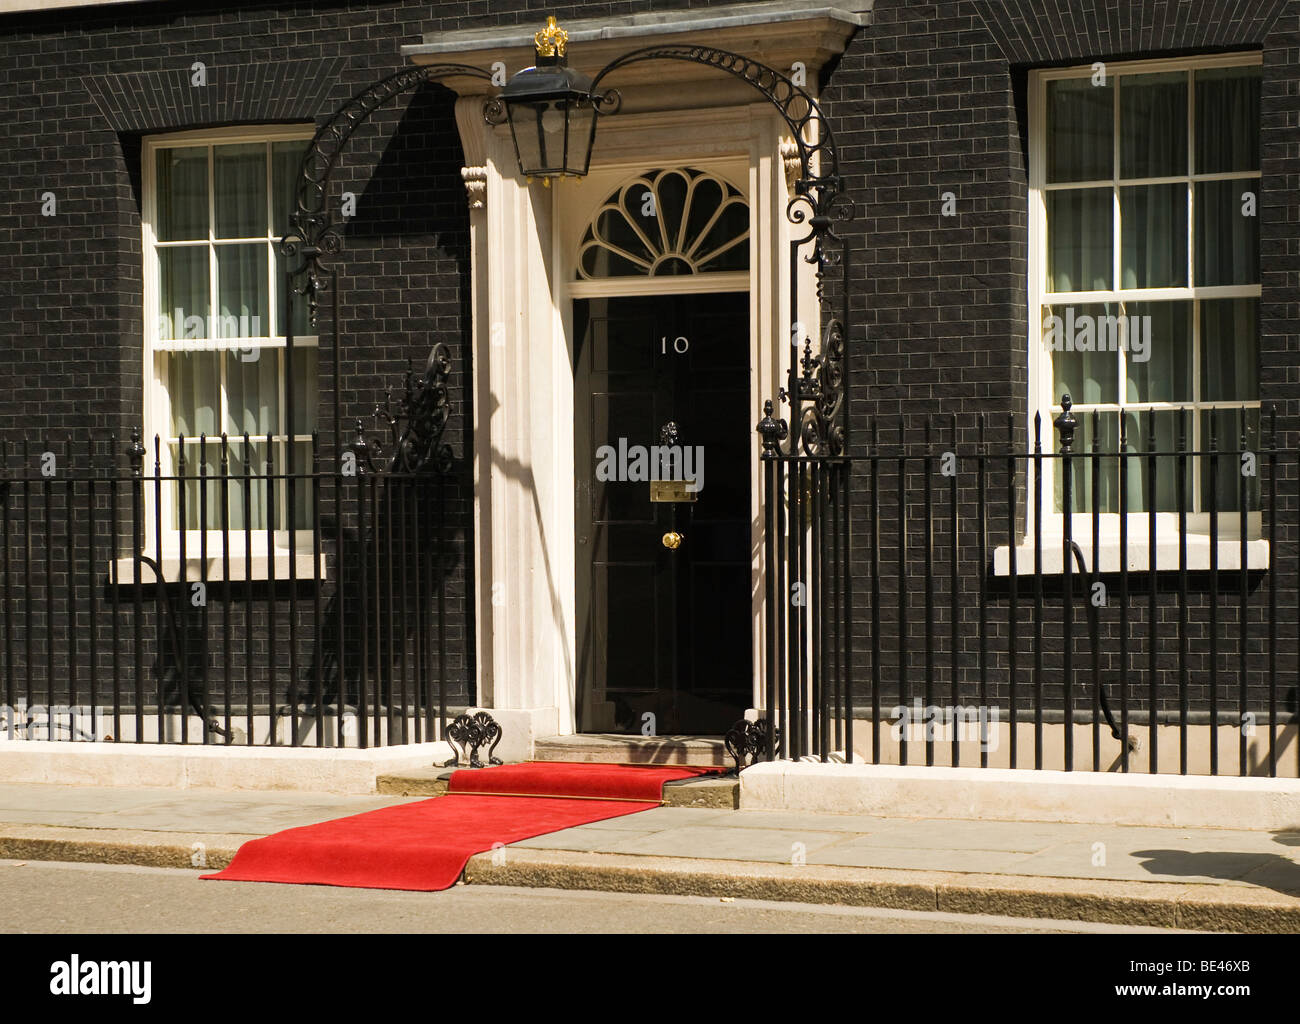 Red carpet  at the door of 10 Downing Street for the arrival of VIP guests - Stock Image